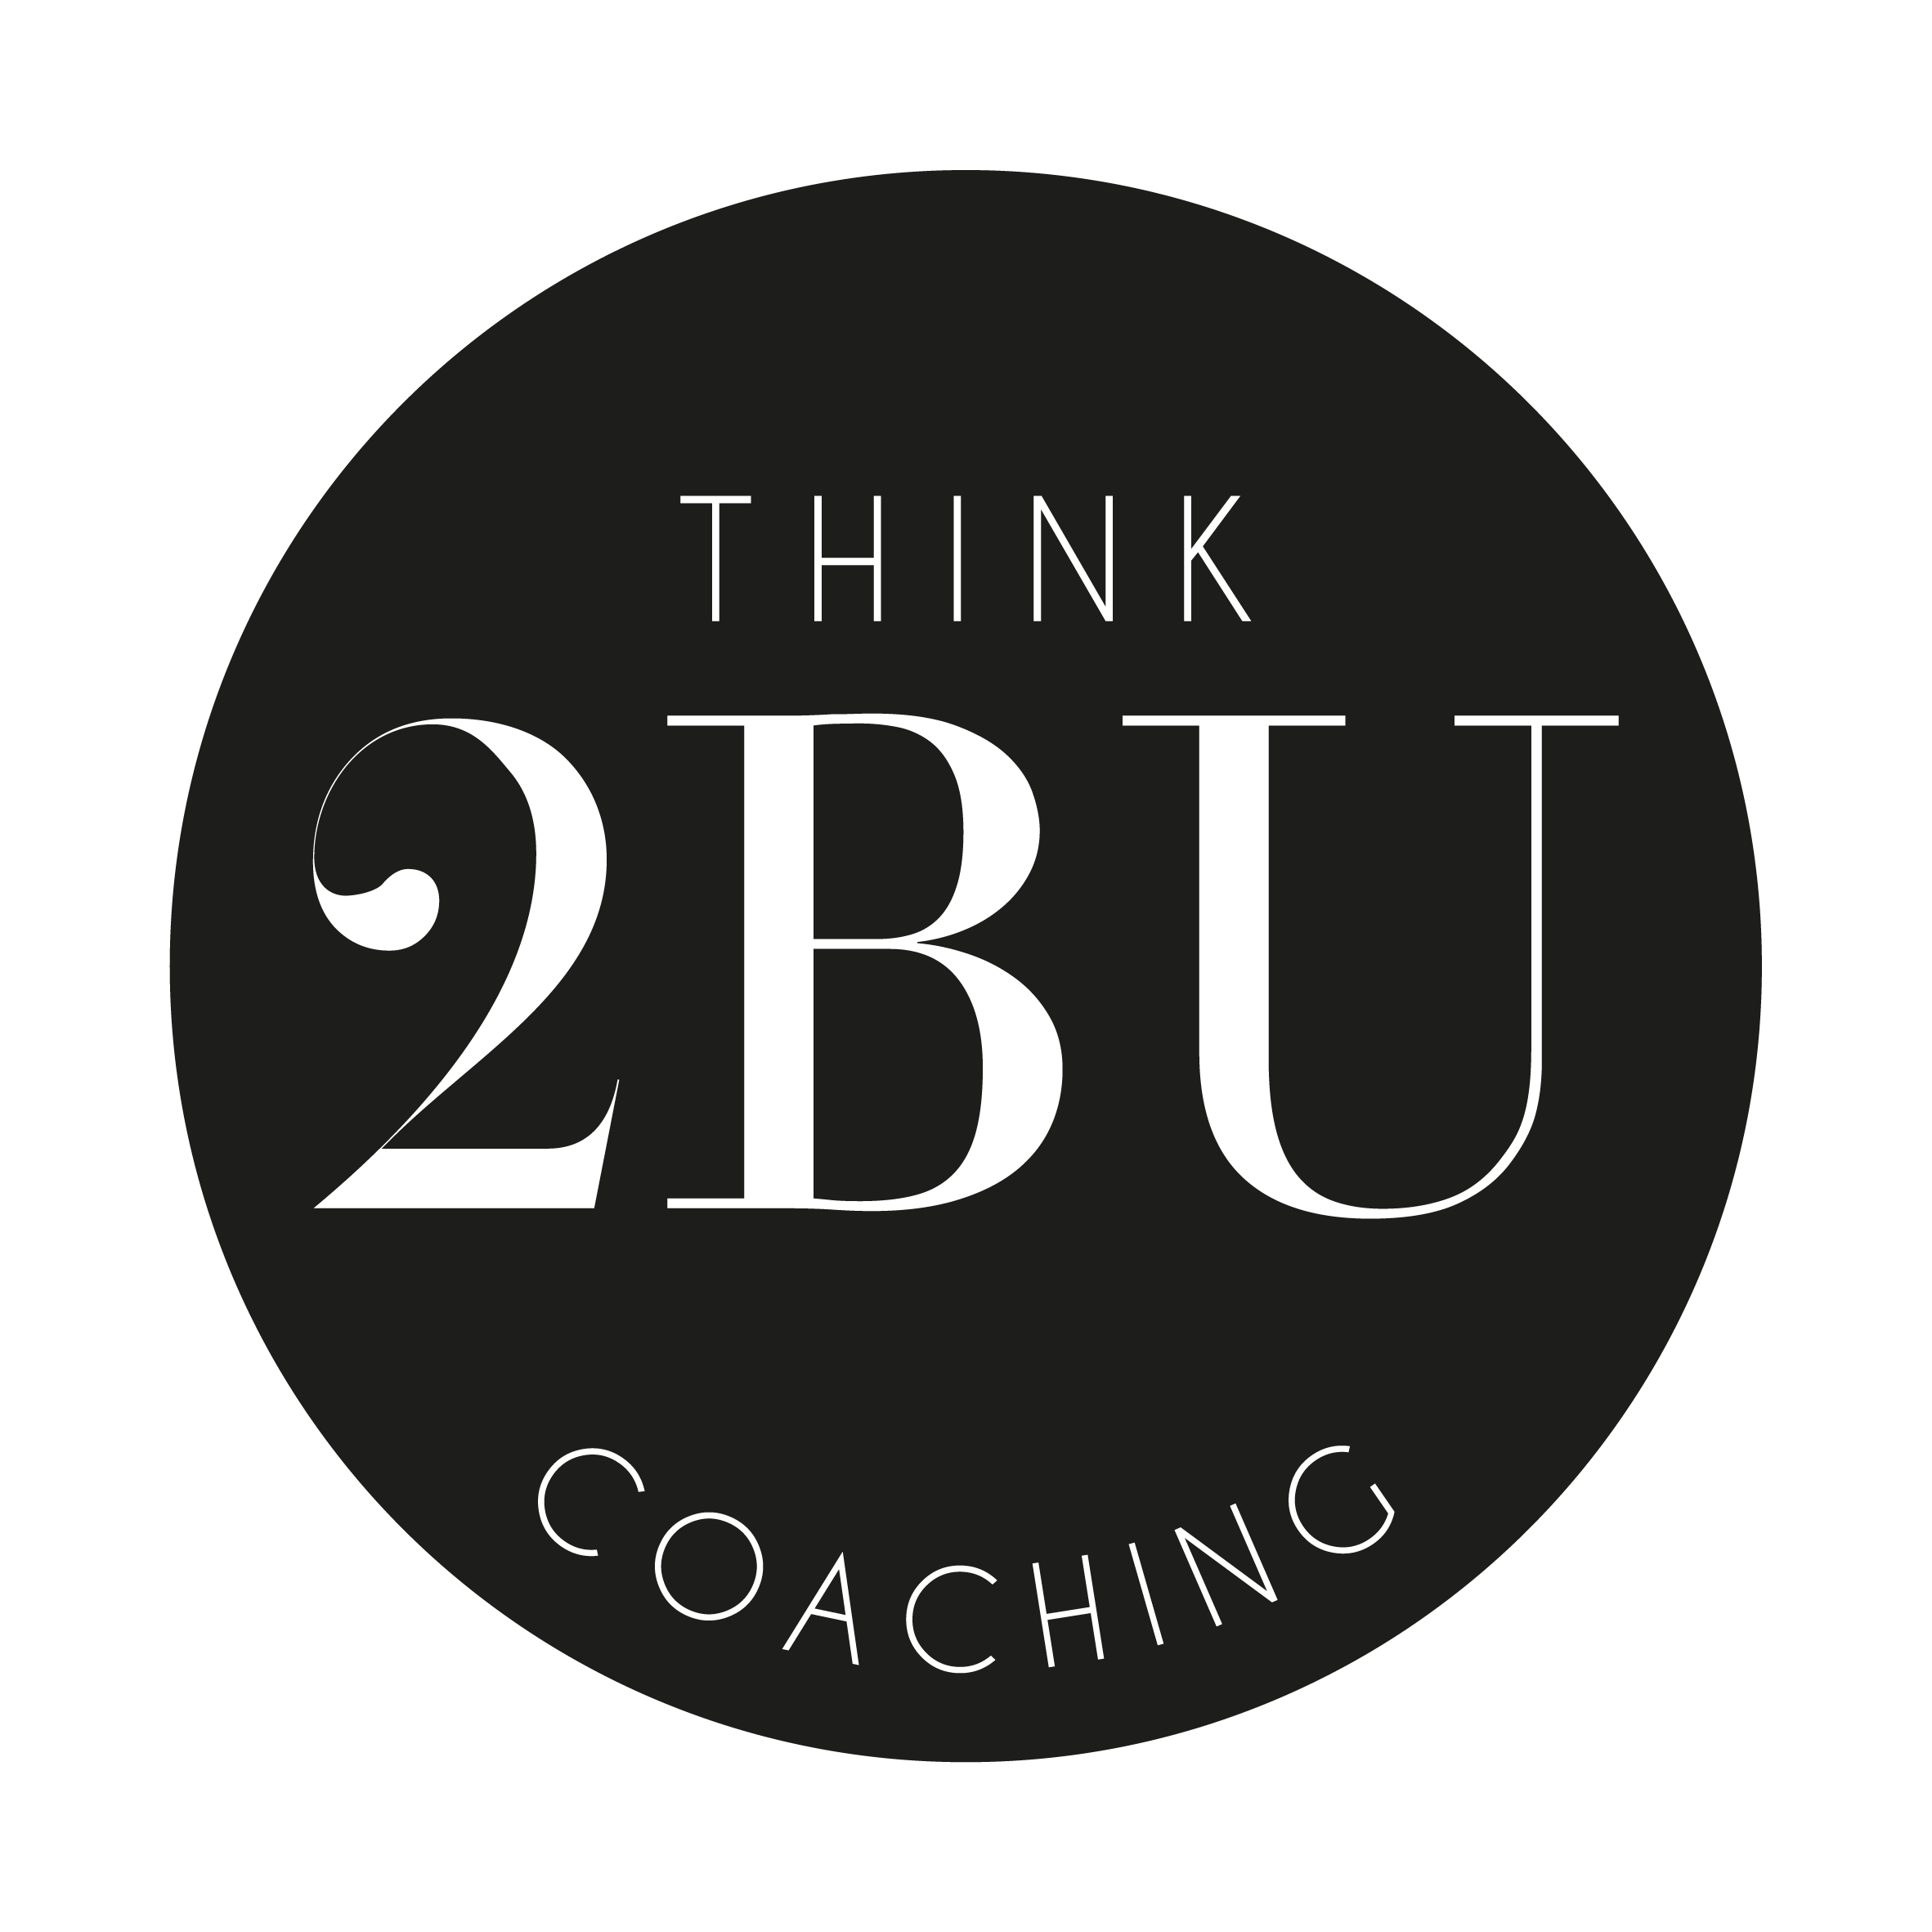 Think 2BU Coaching